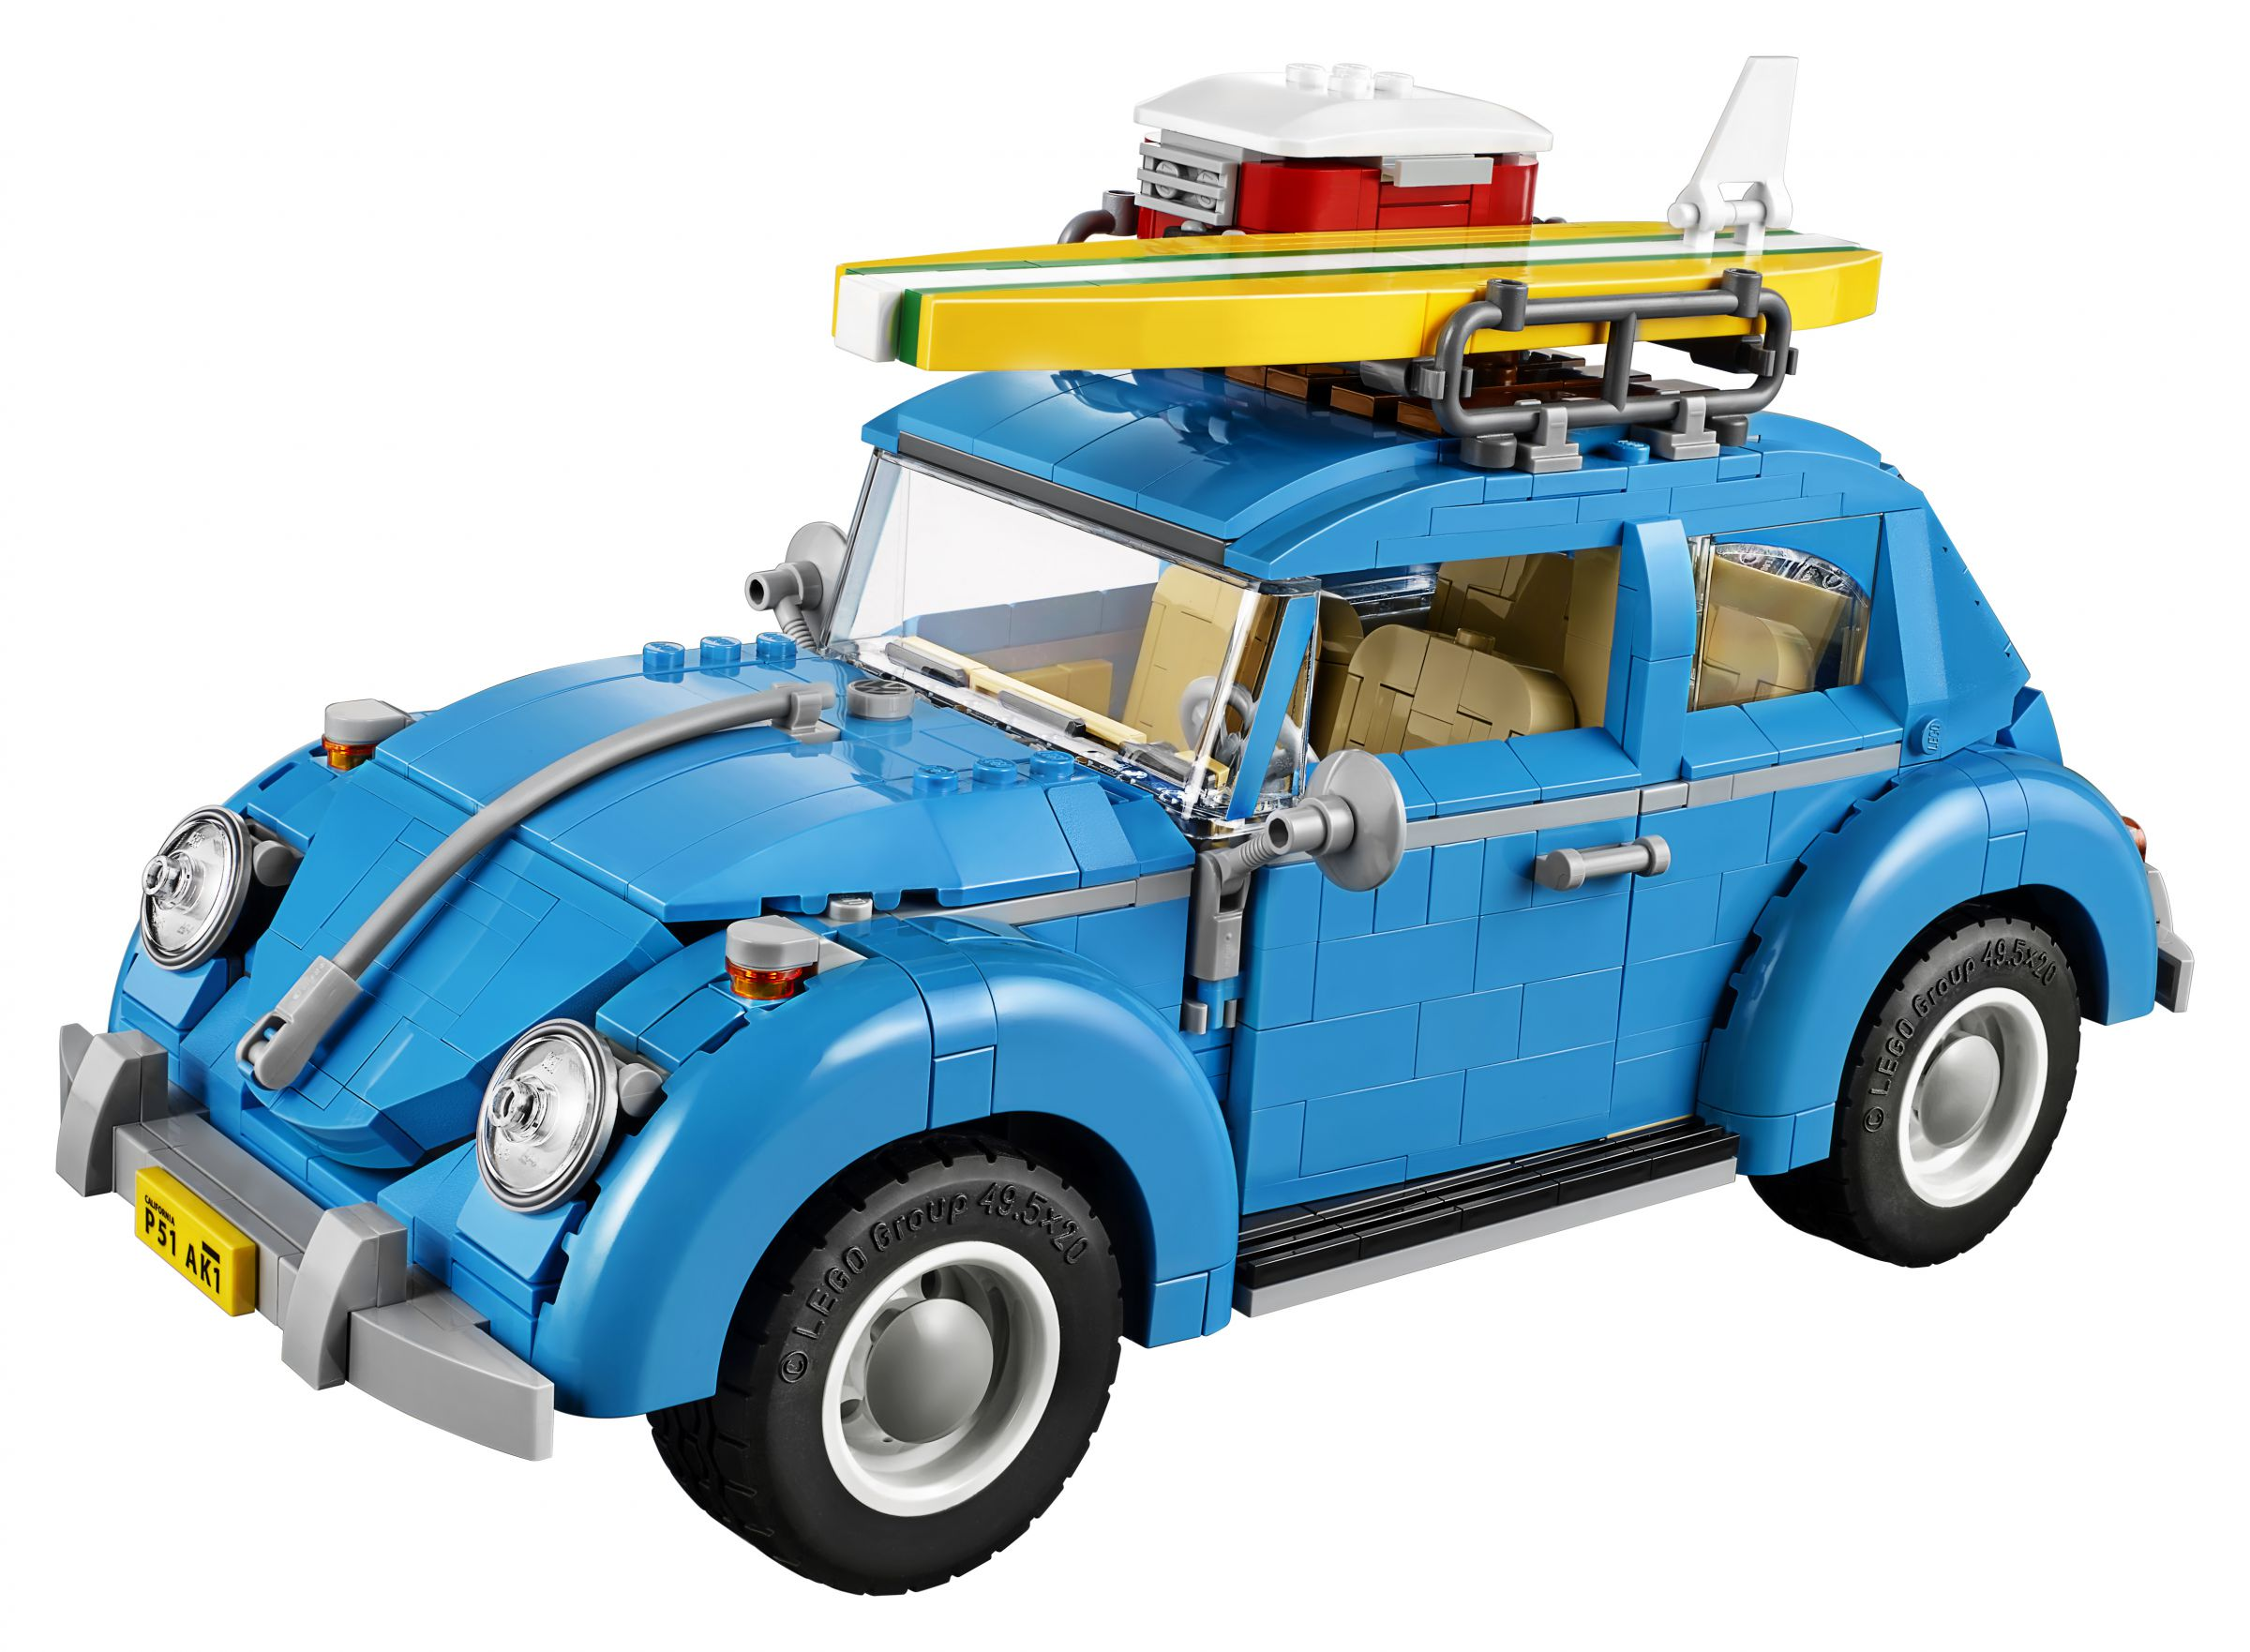 LEGO Advanced Models 10252 VW Käfer